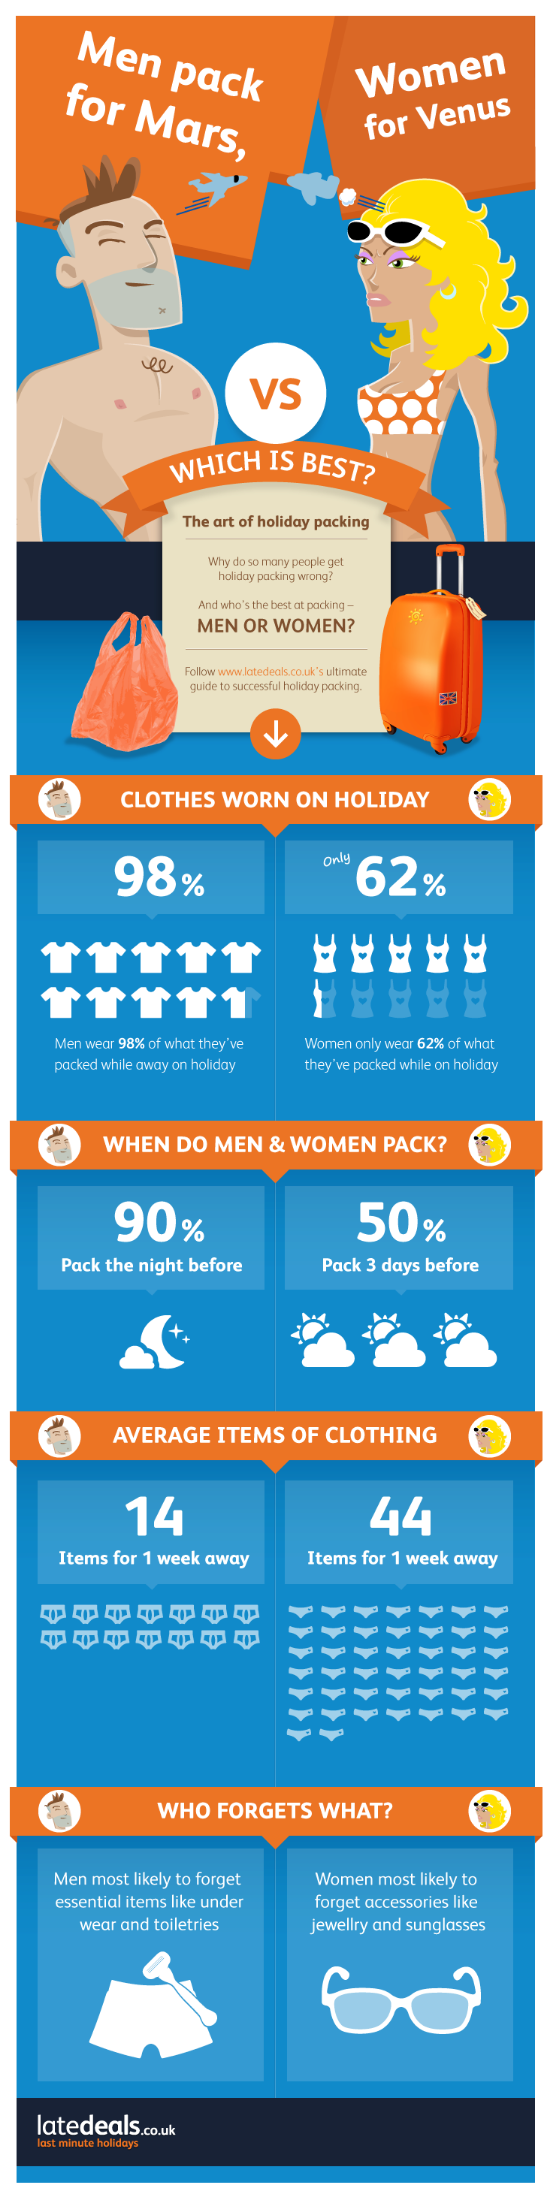 Source:http://www.infographs.org/2013/05/the-art-holiday-packing-infographic/